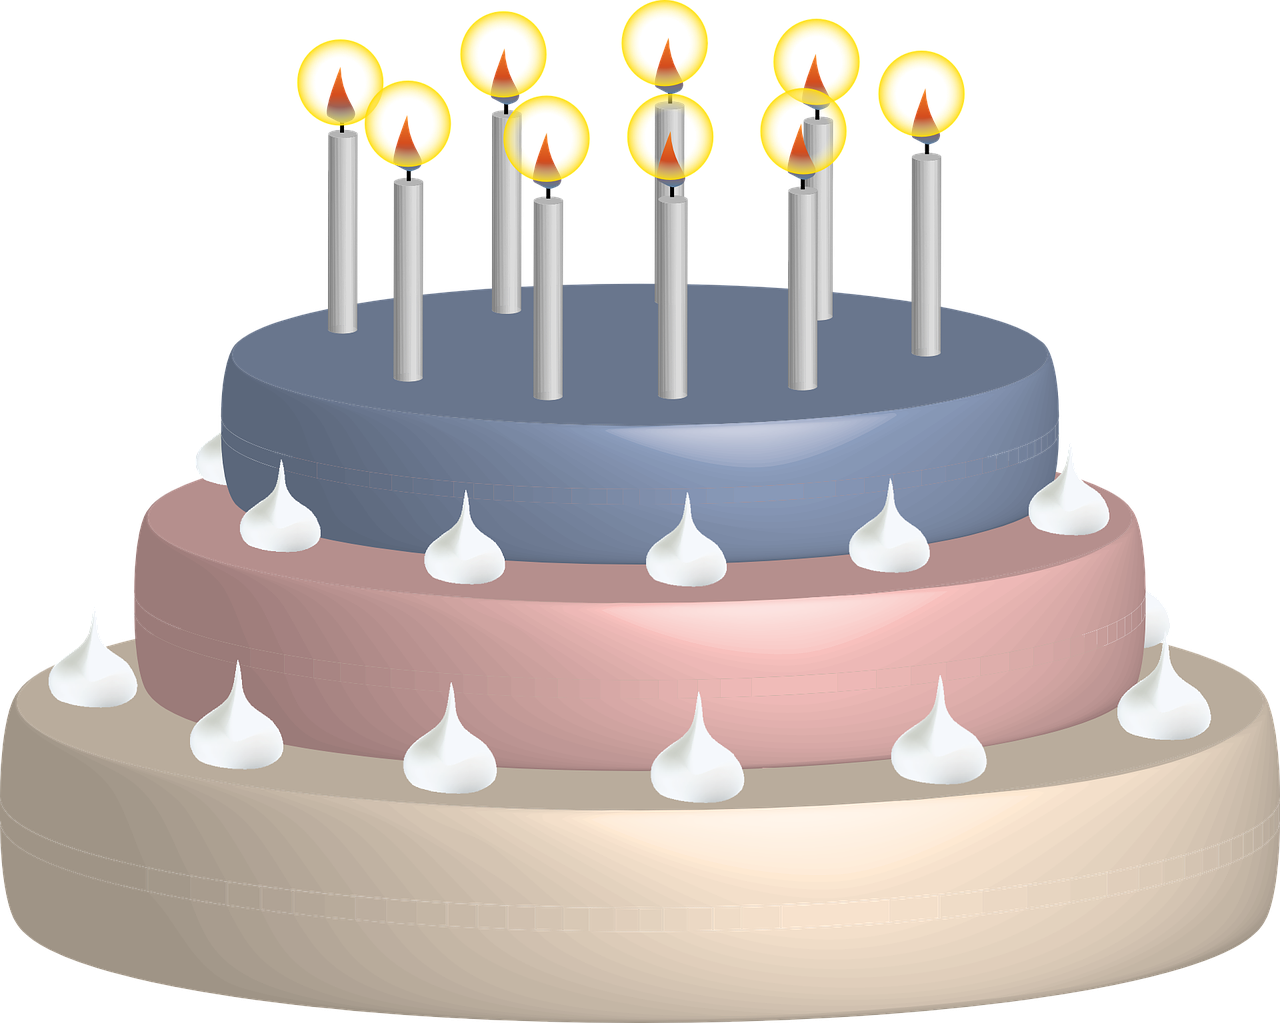 Happy birthday || Happy birthday wishes || Happy birthday cake || Happy birthday image